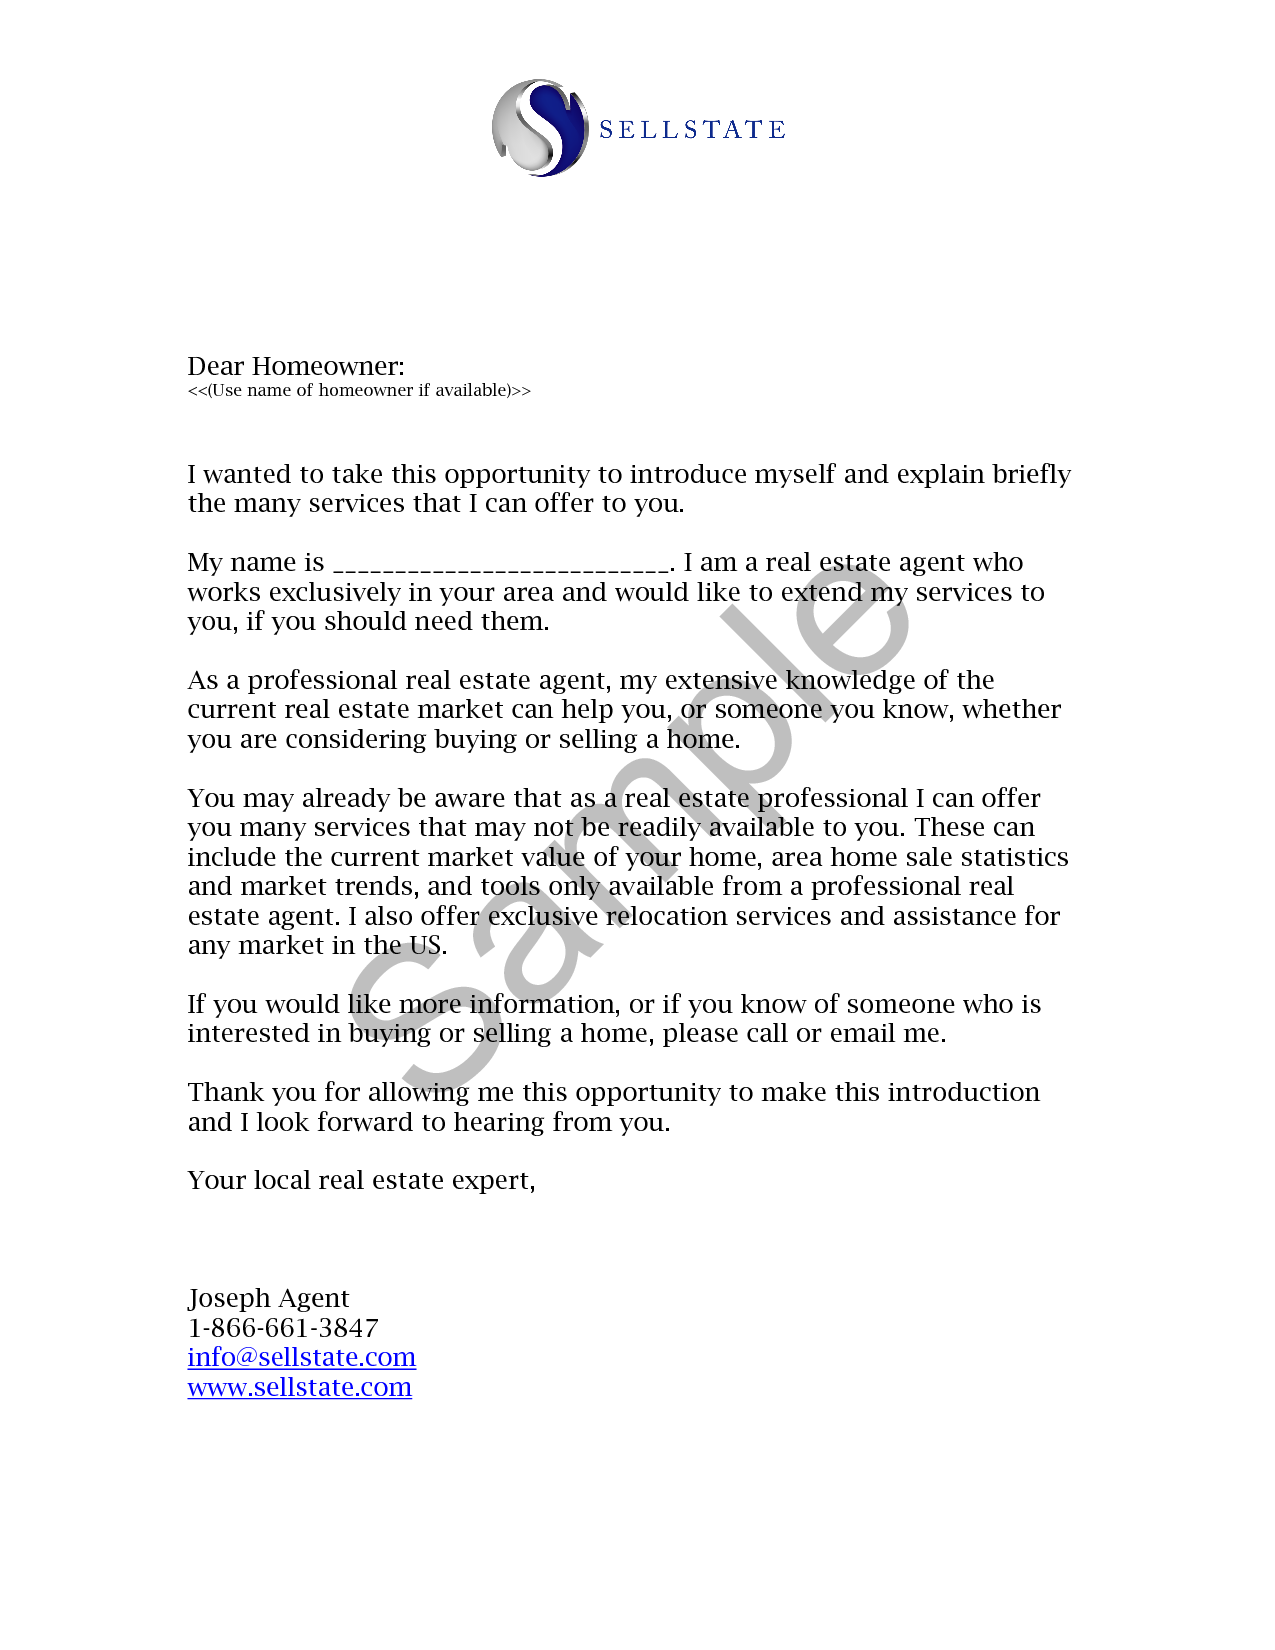 introducing broker agreement template - real estate letters of introduction introduction letter